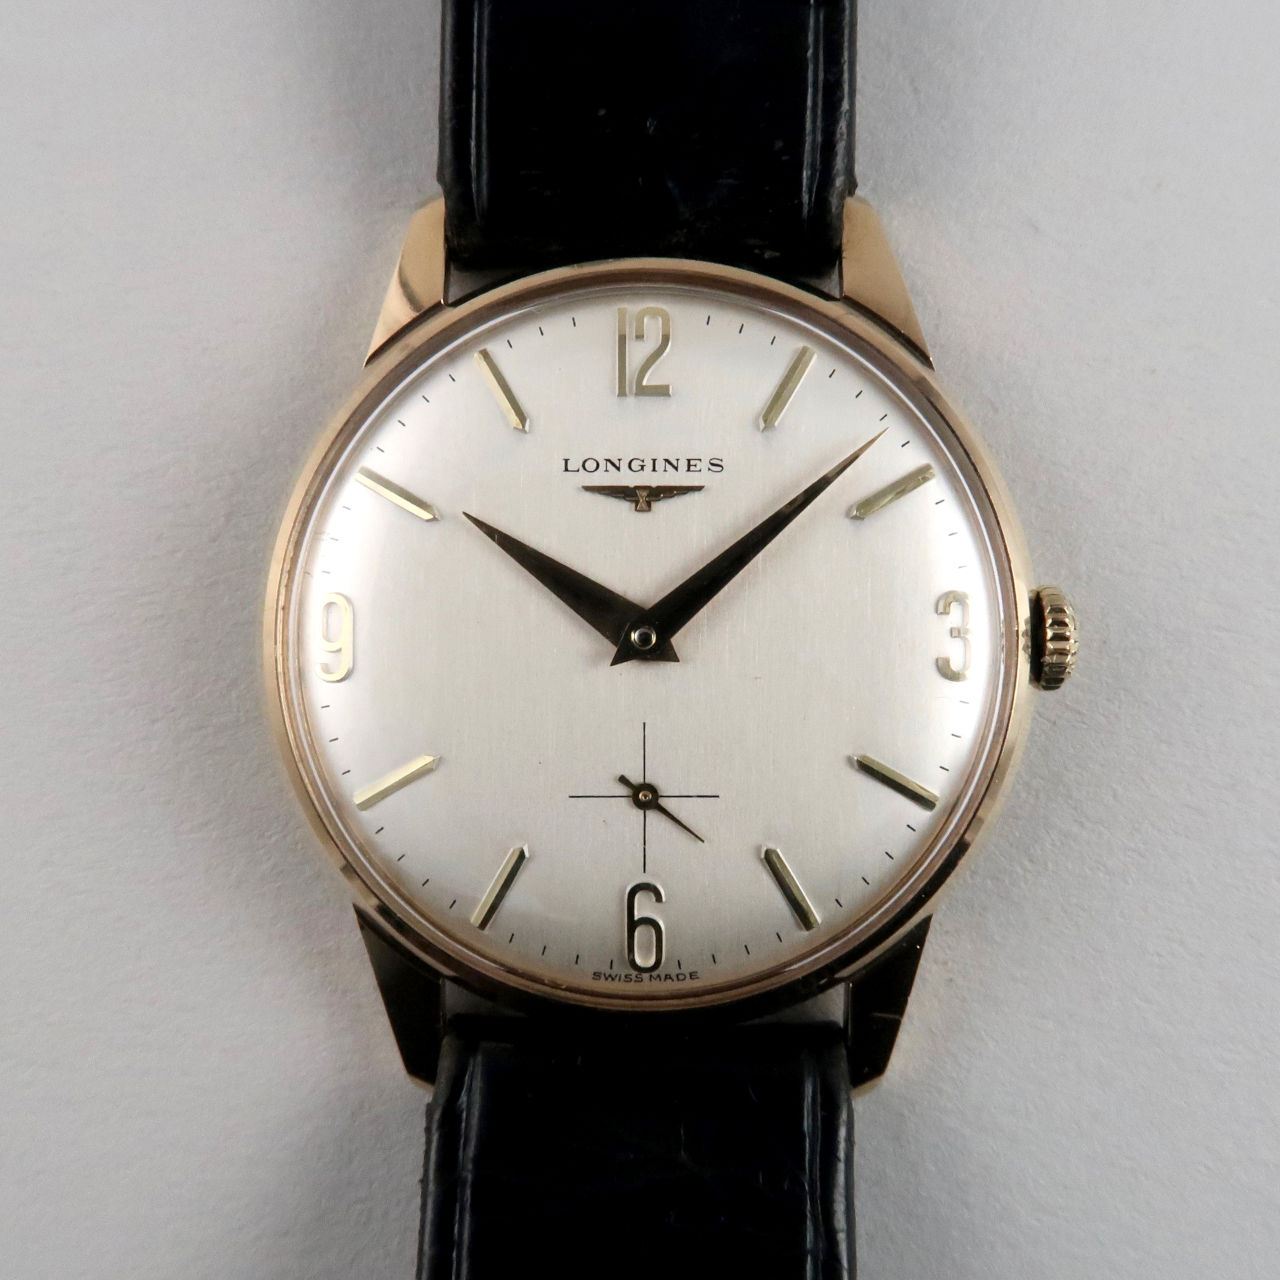 Longines gold vintage wristwatch, hallmarked 1965